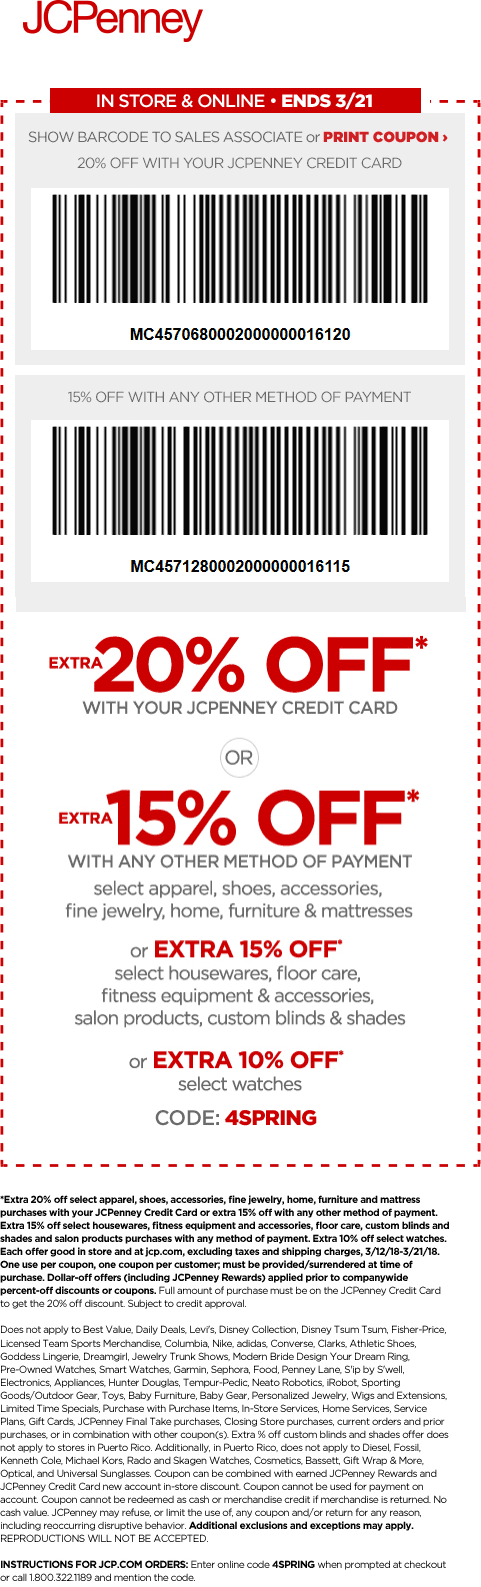 JCPenney Coupon February 2019 15% off at JCPenney, or online via promo code 4SPRING